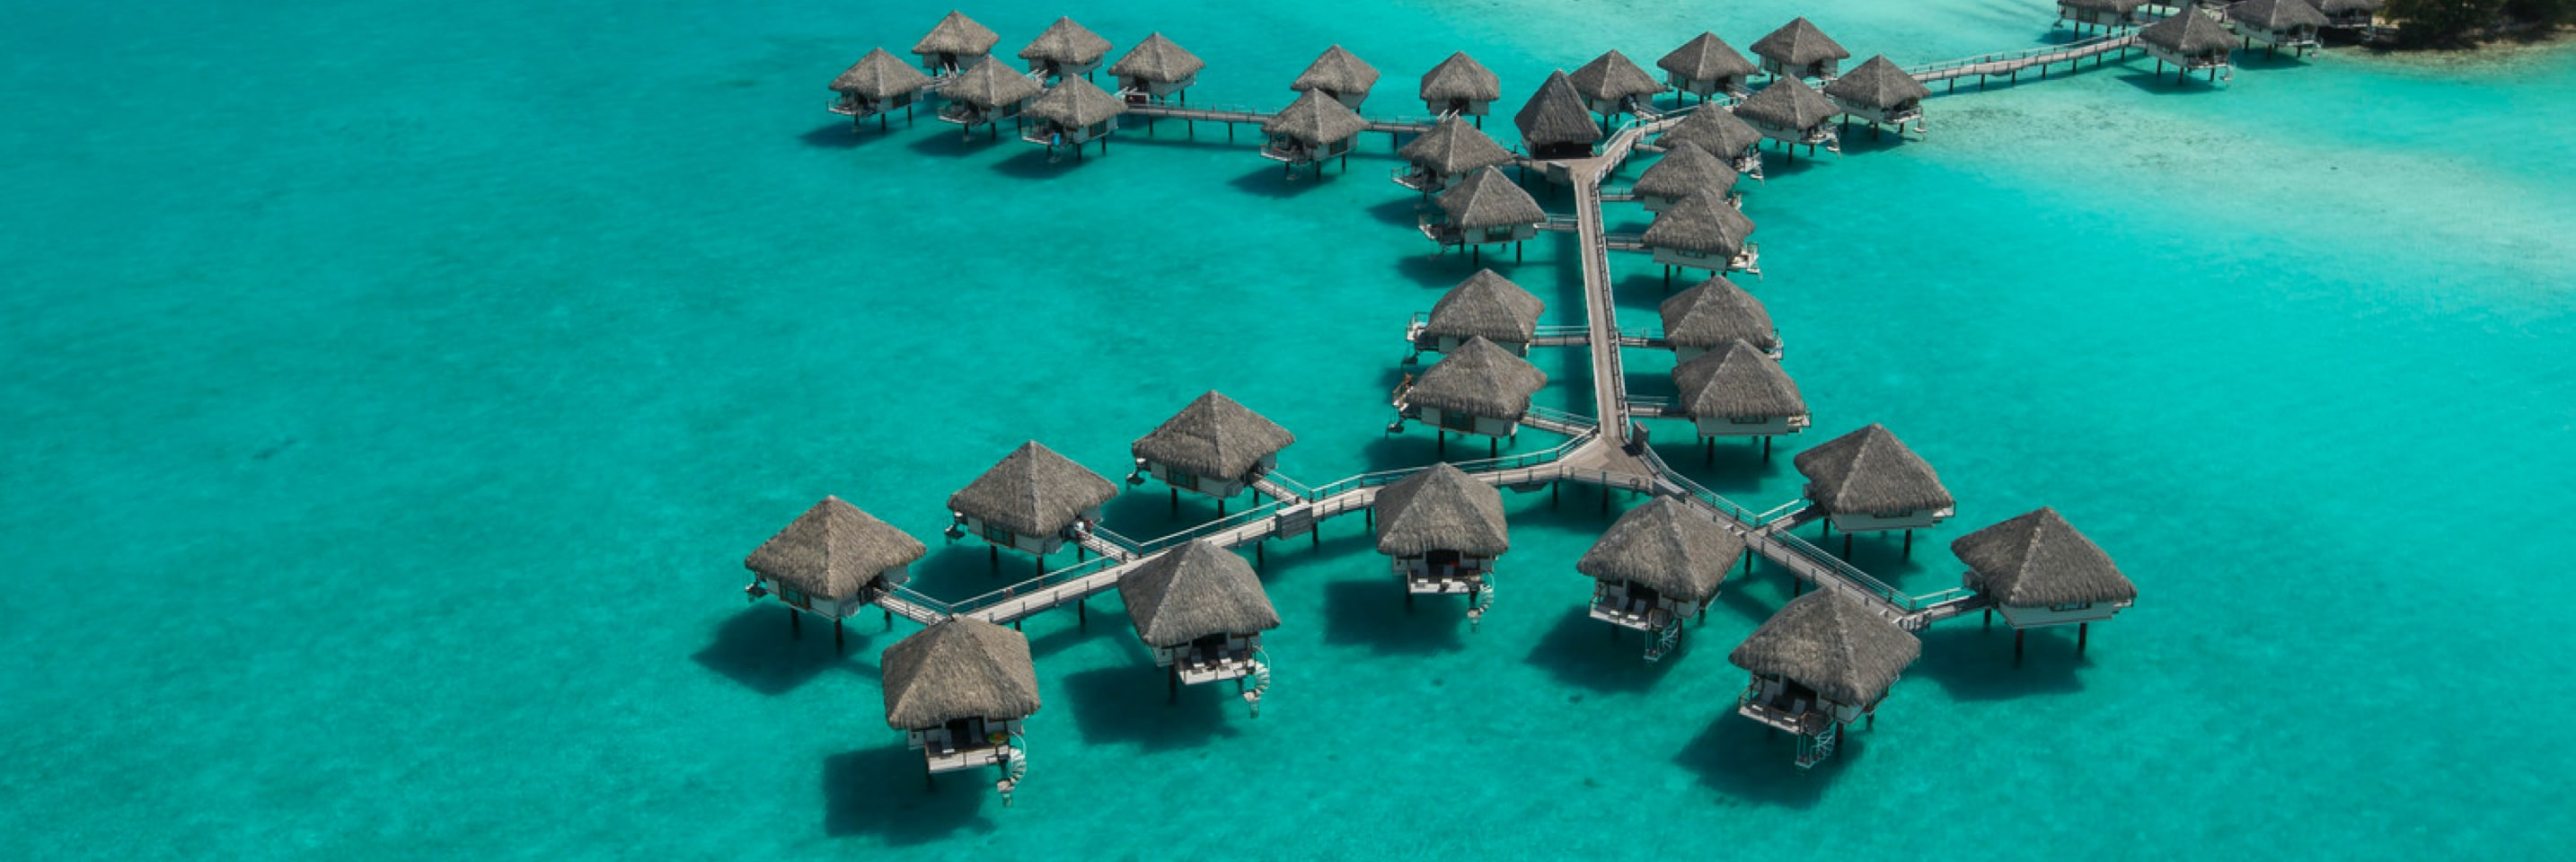 Villas on the water at Bora Bora